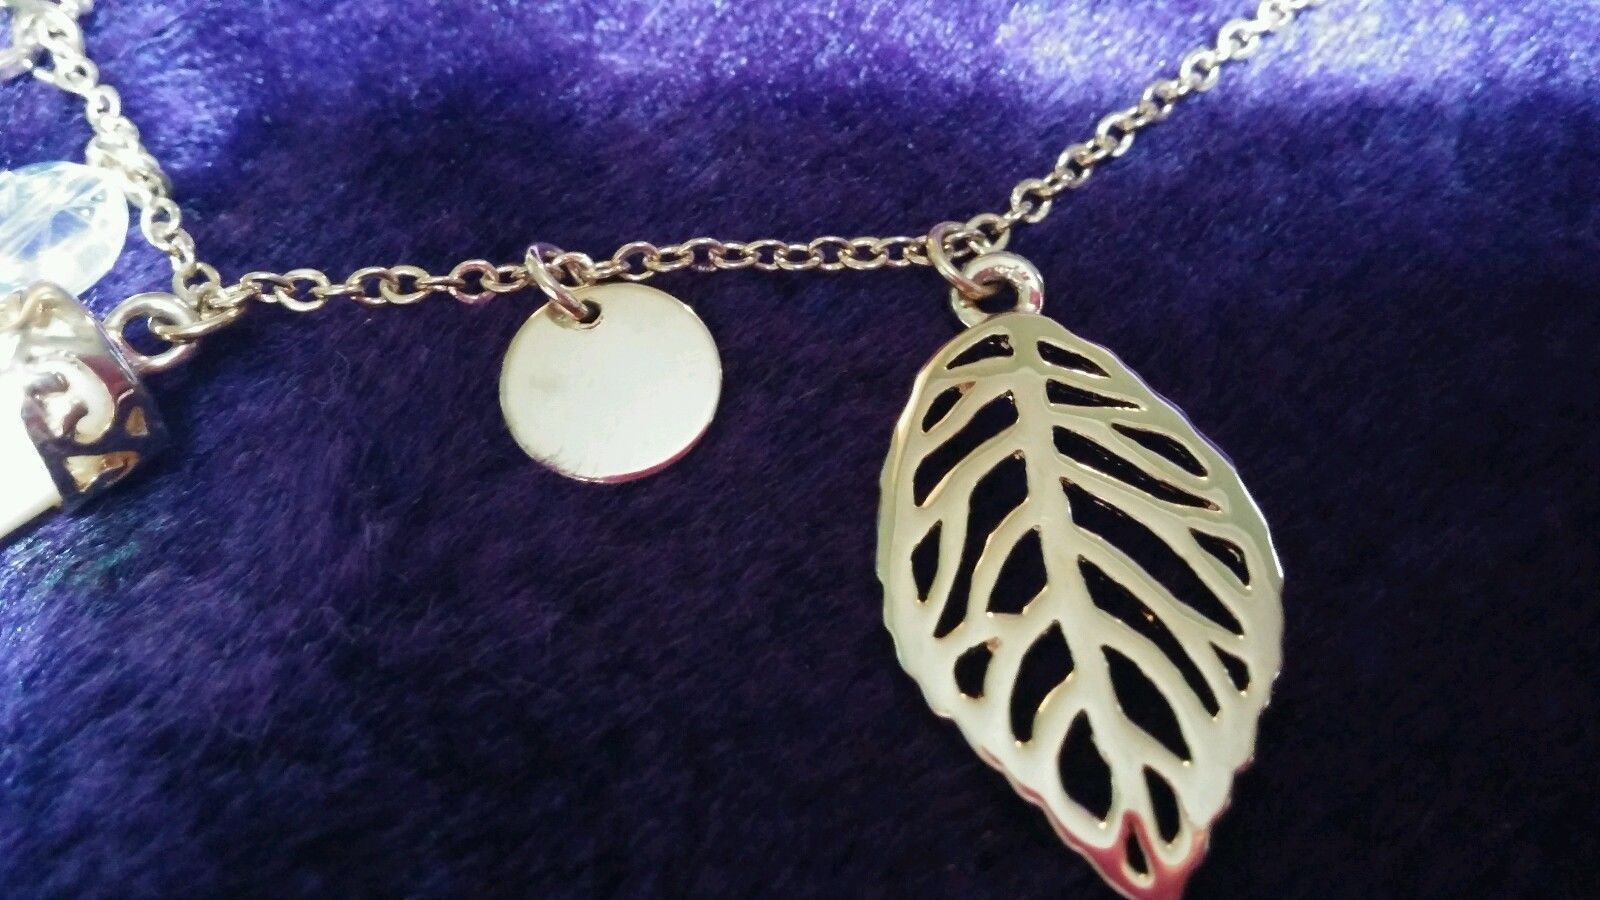 Faux Ivory Tusk Charm Necklace Lucky Goldtone Adjustable